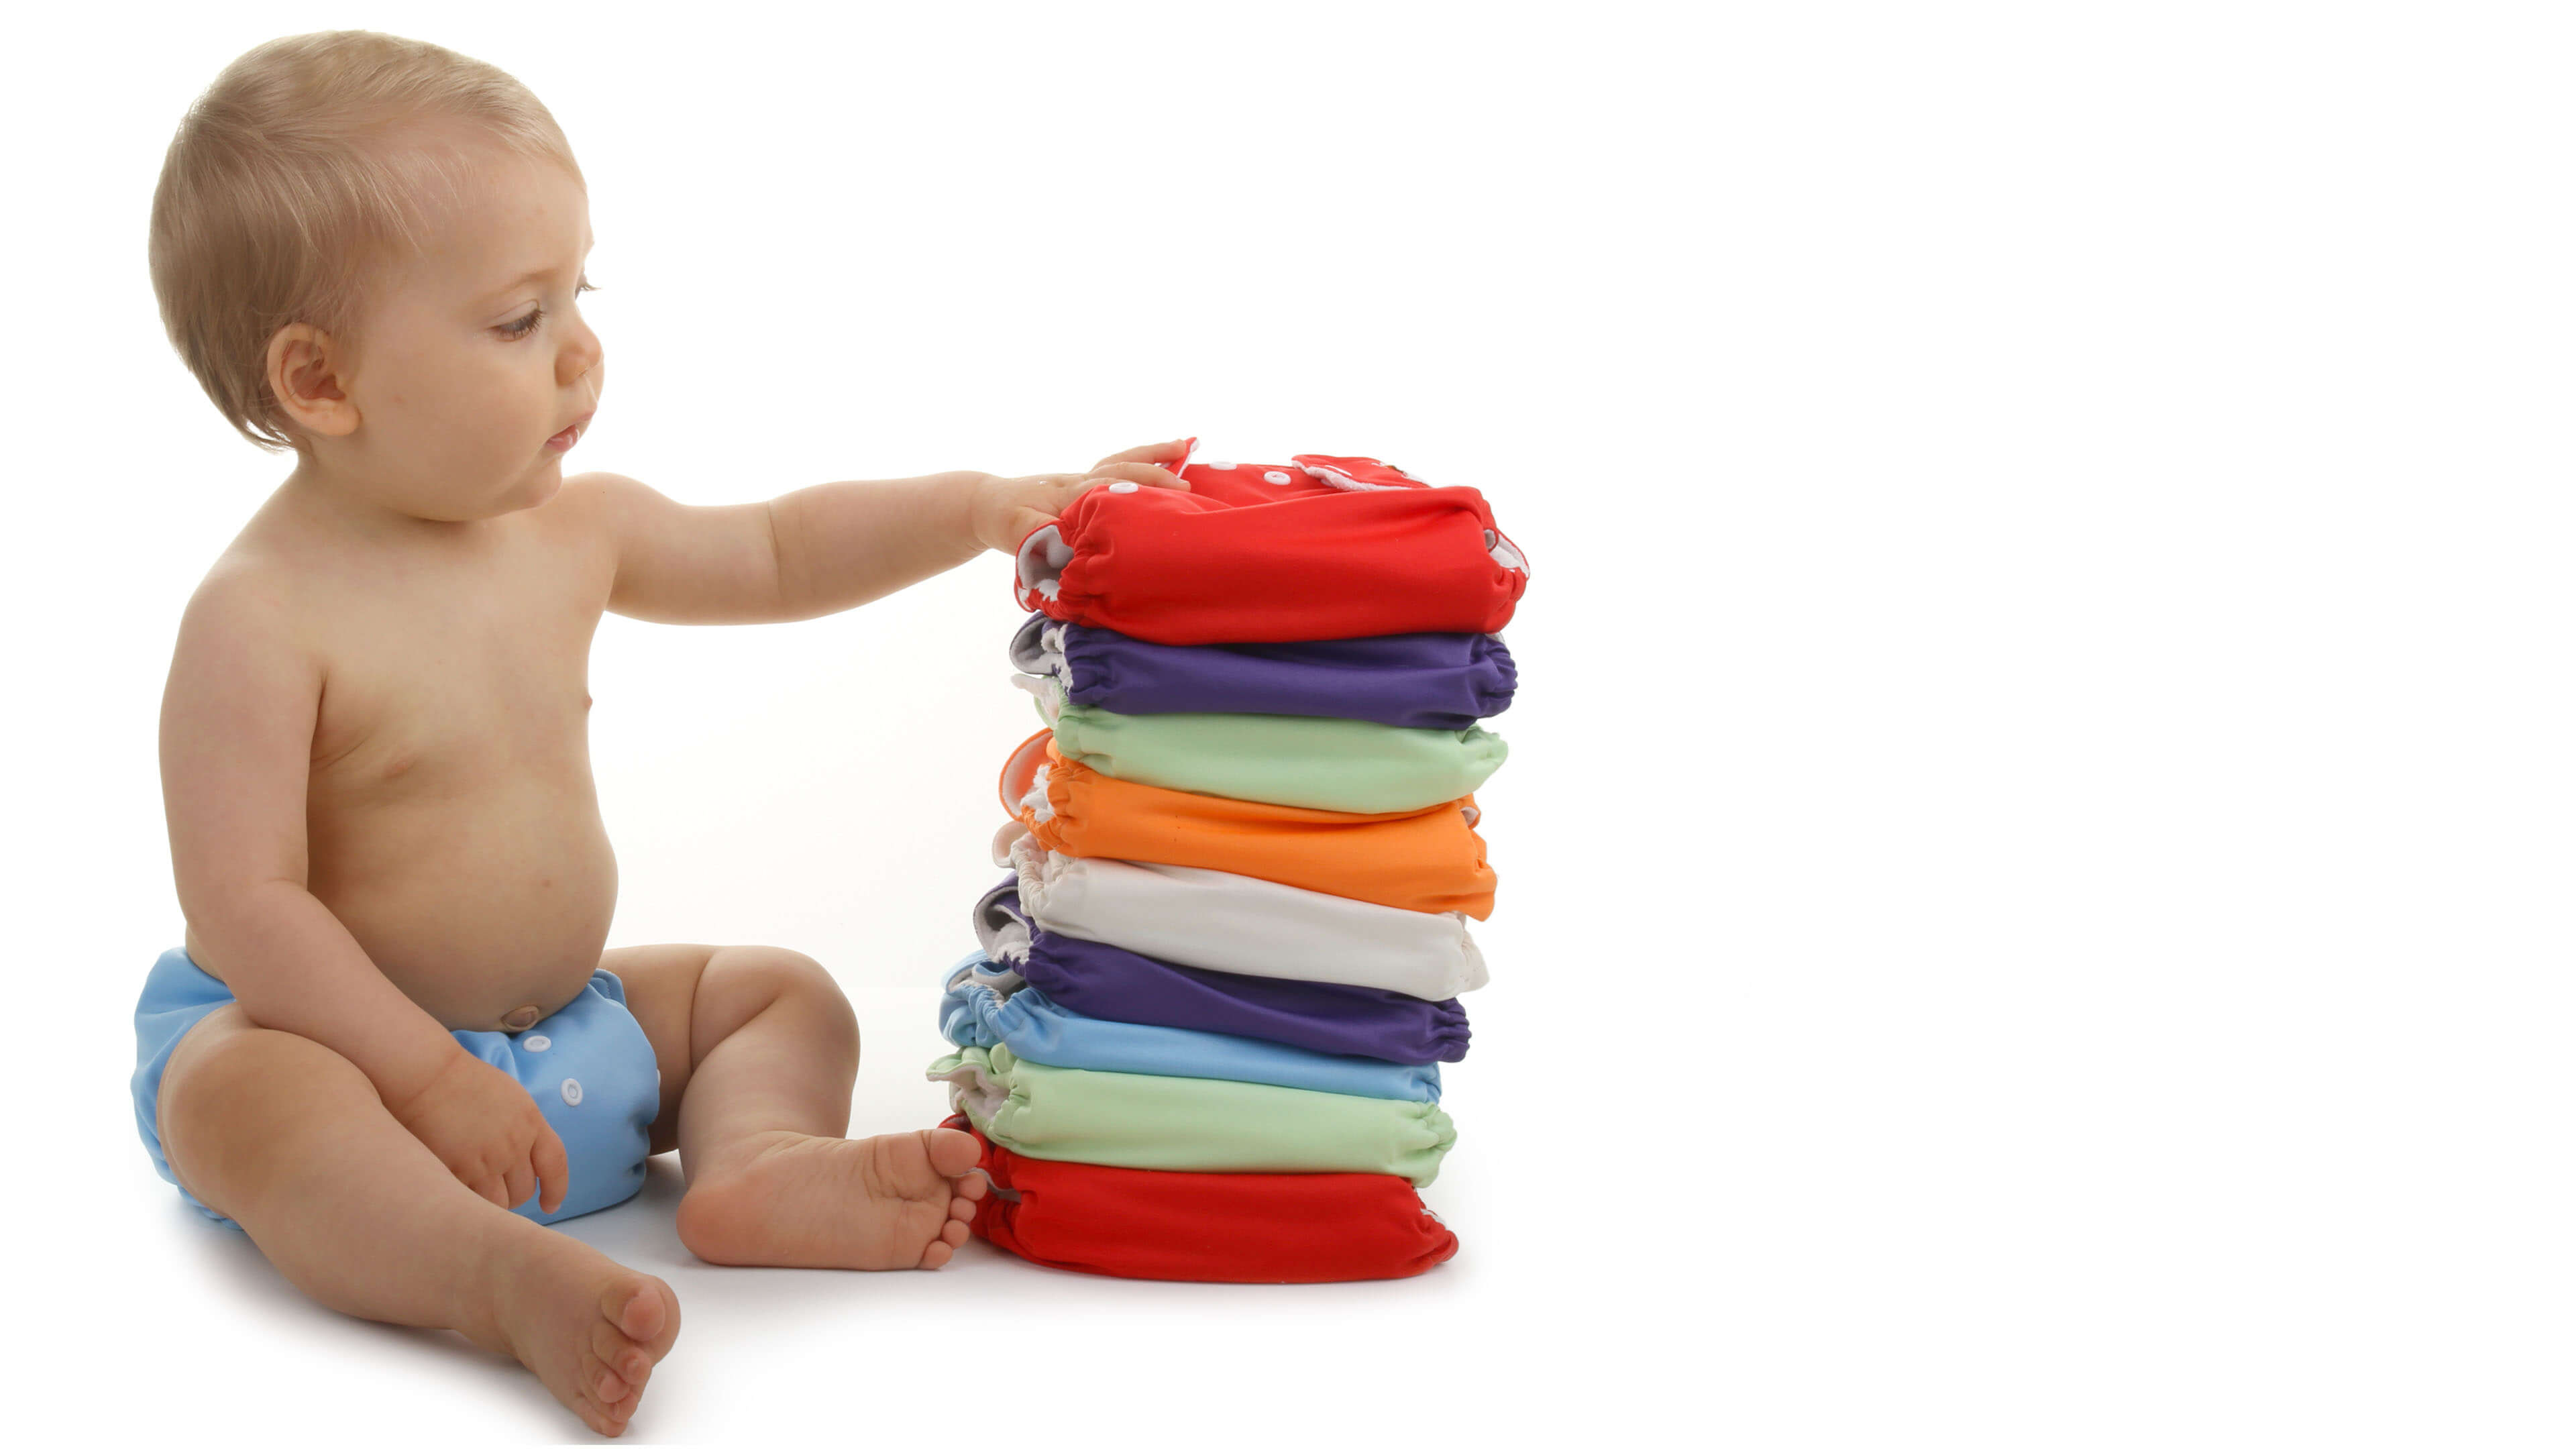 Cloth diapering is easier to do thank you may think, and using cloth diapers will save you a ton of money over disposable diapers. Here's the full scoop!